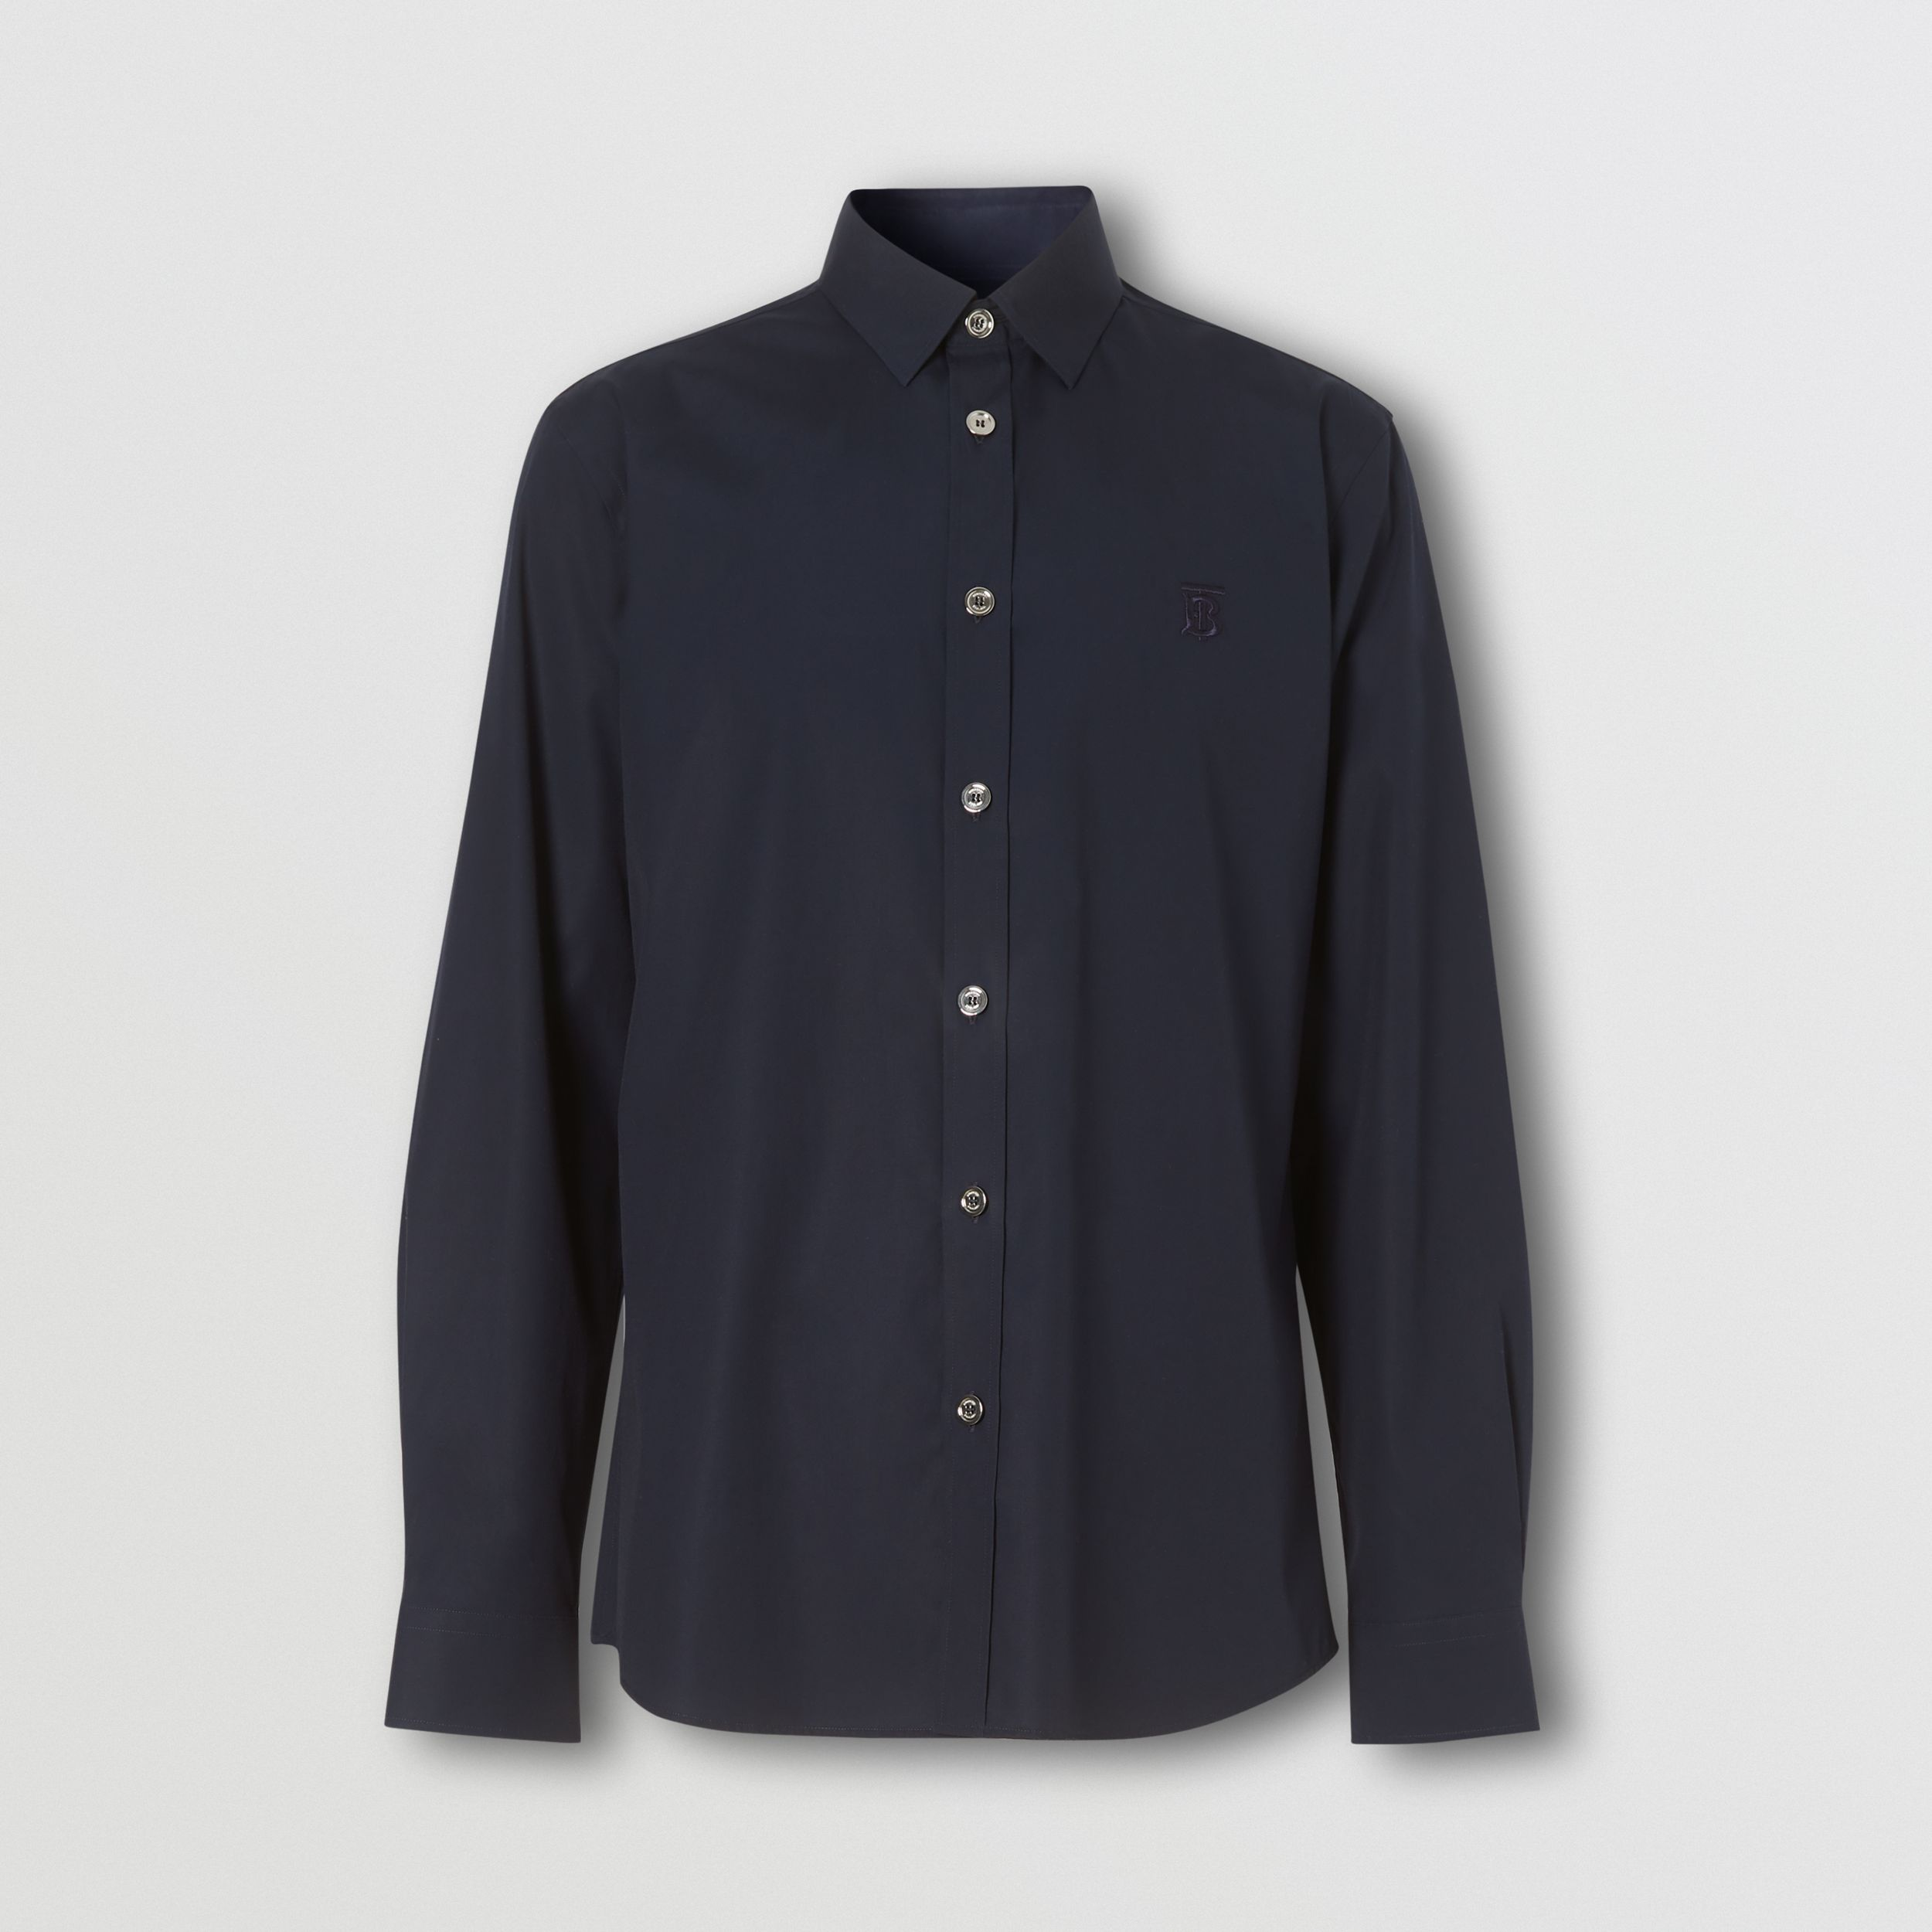 Monogram Motif Stretch Cotton Poplin Shirt in Navy - Men | Burberry - 4